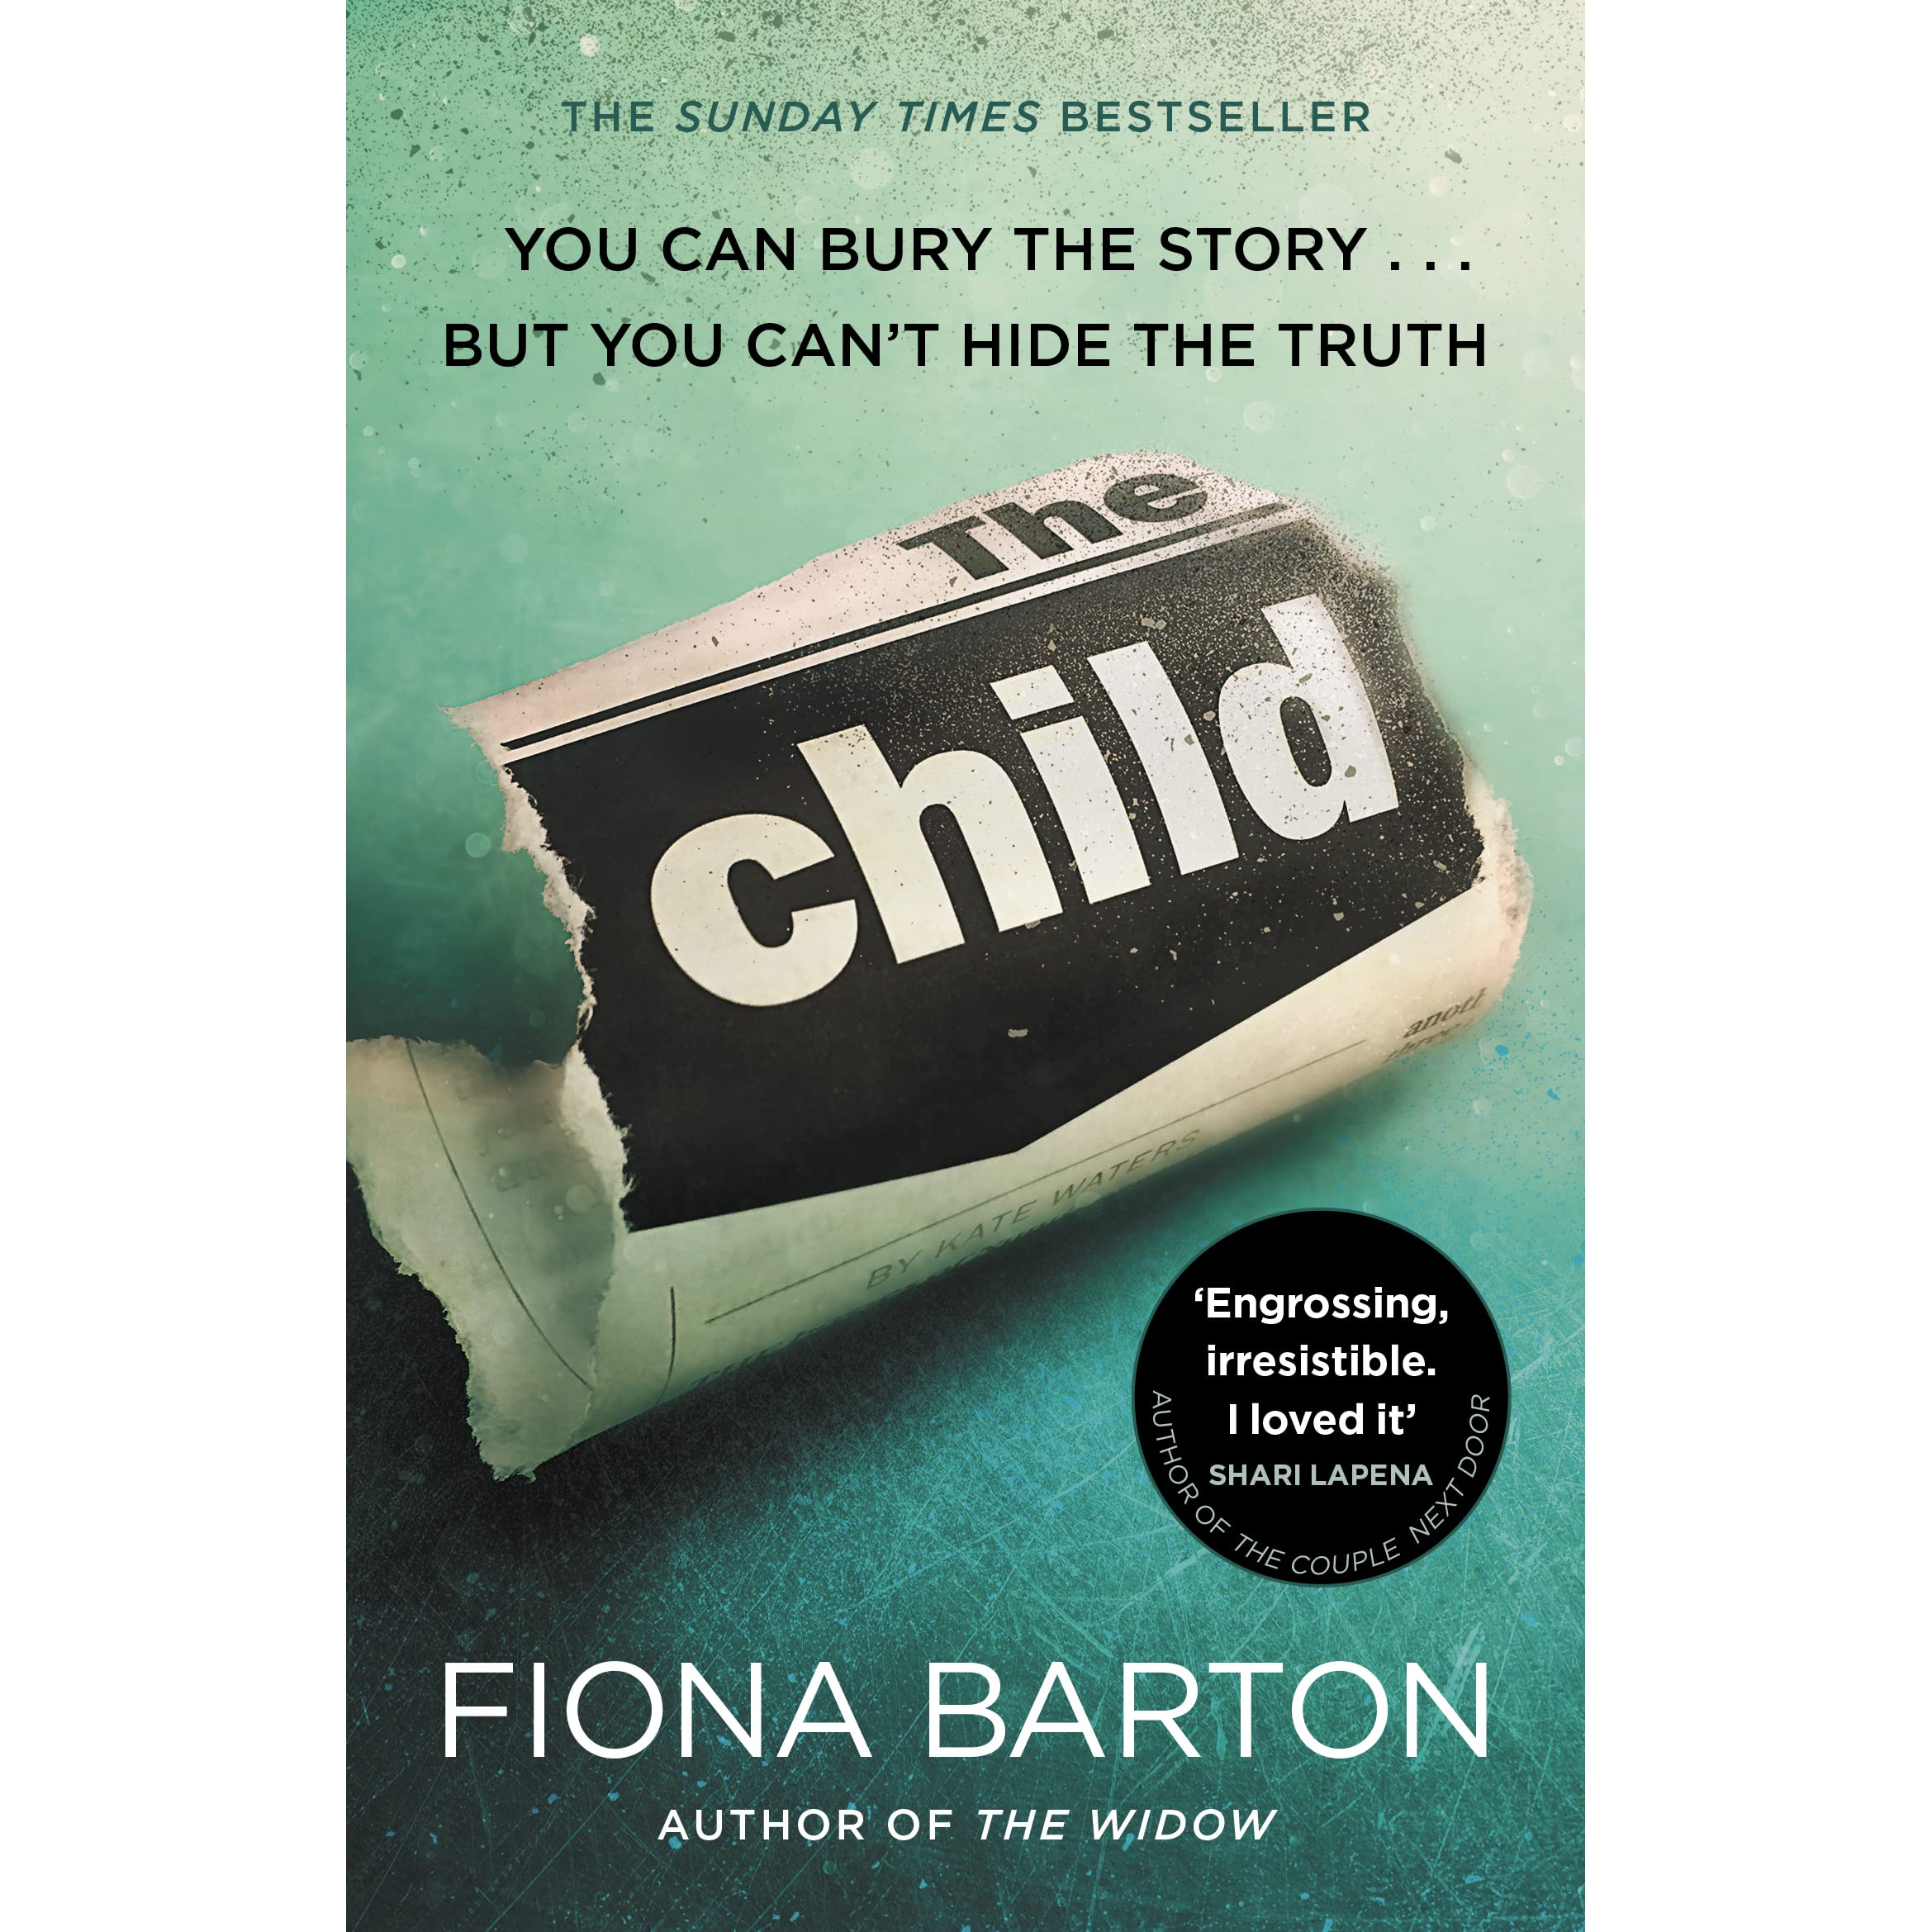 The child by fiona barton fandeluxe Images